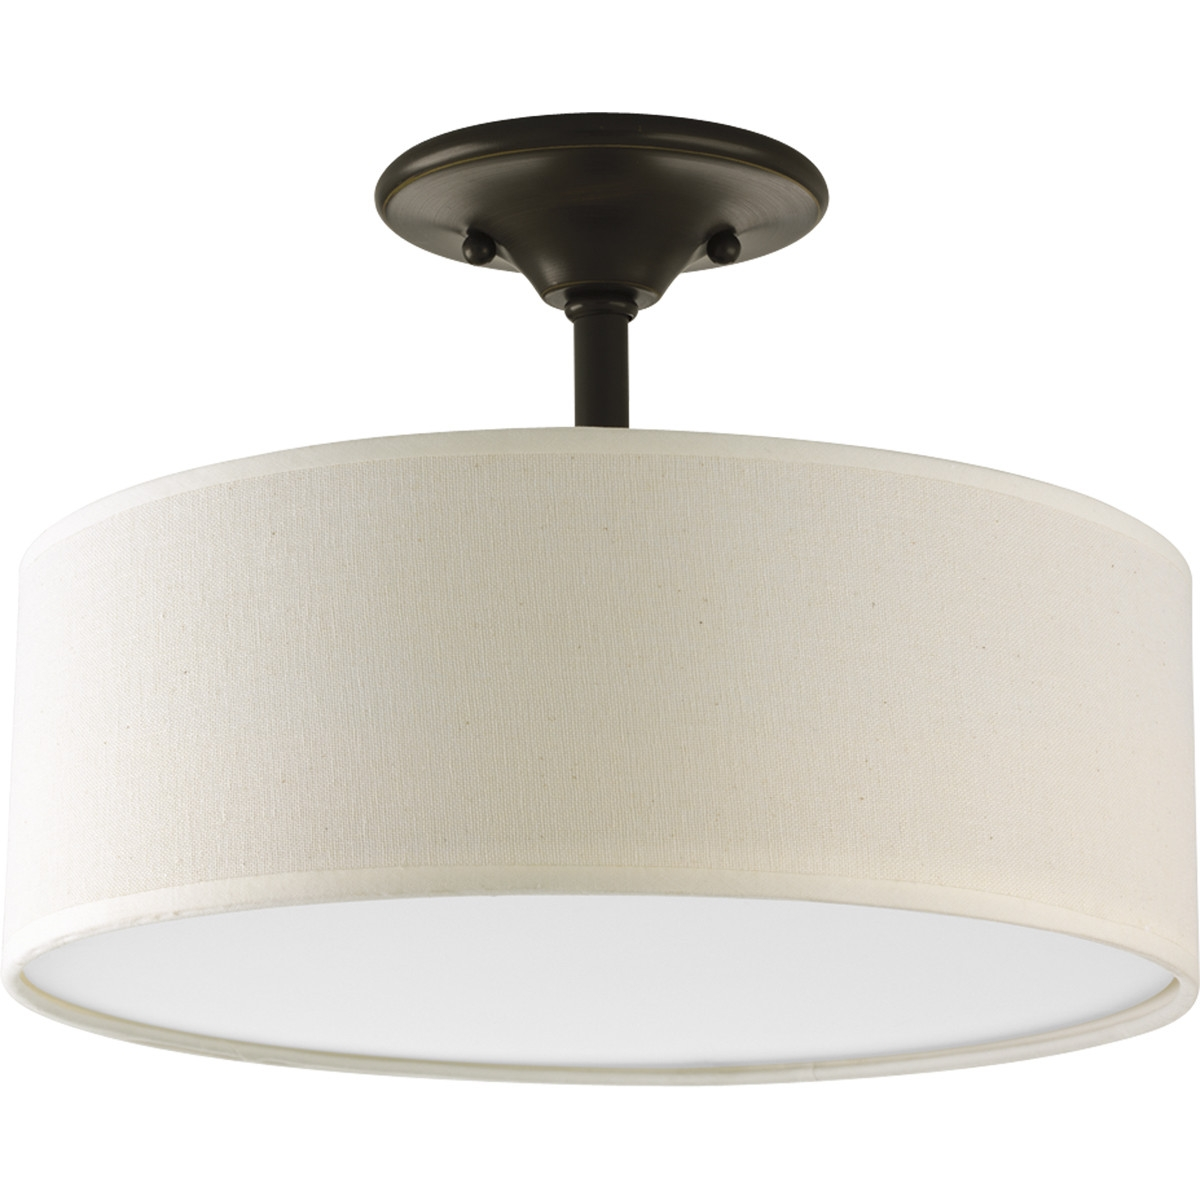 This Antique Bronze Semi-Flush Mount Ceiling Light w/ Round Drum Shade would be a great addition to your home. It is made of fabric with plastic inner lining and comes with two lights.